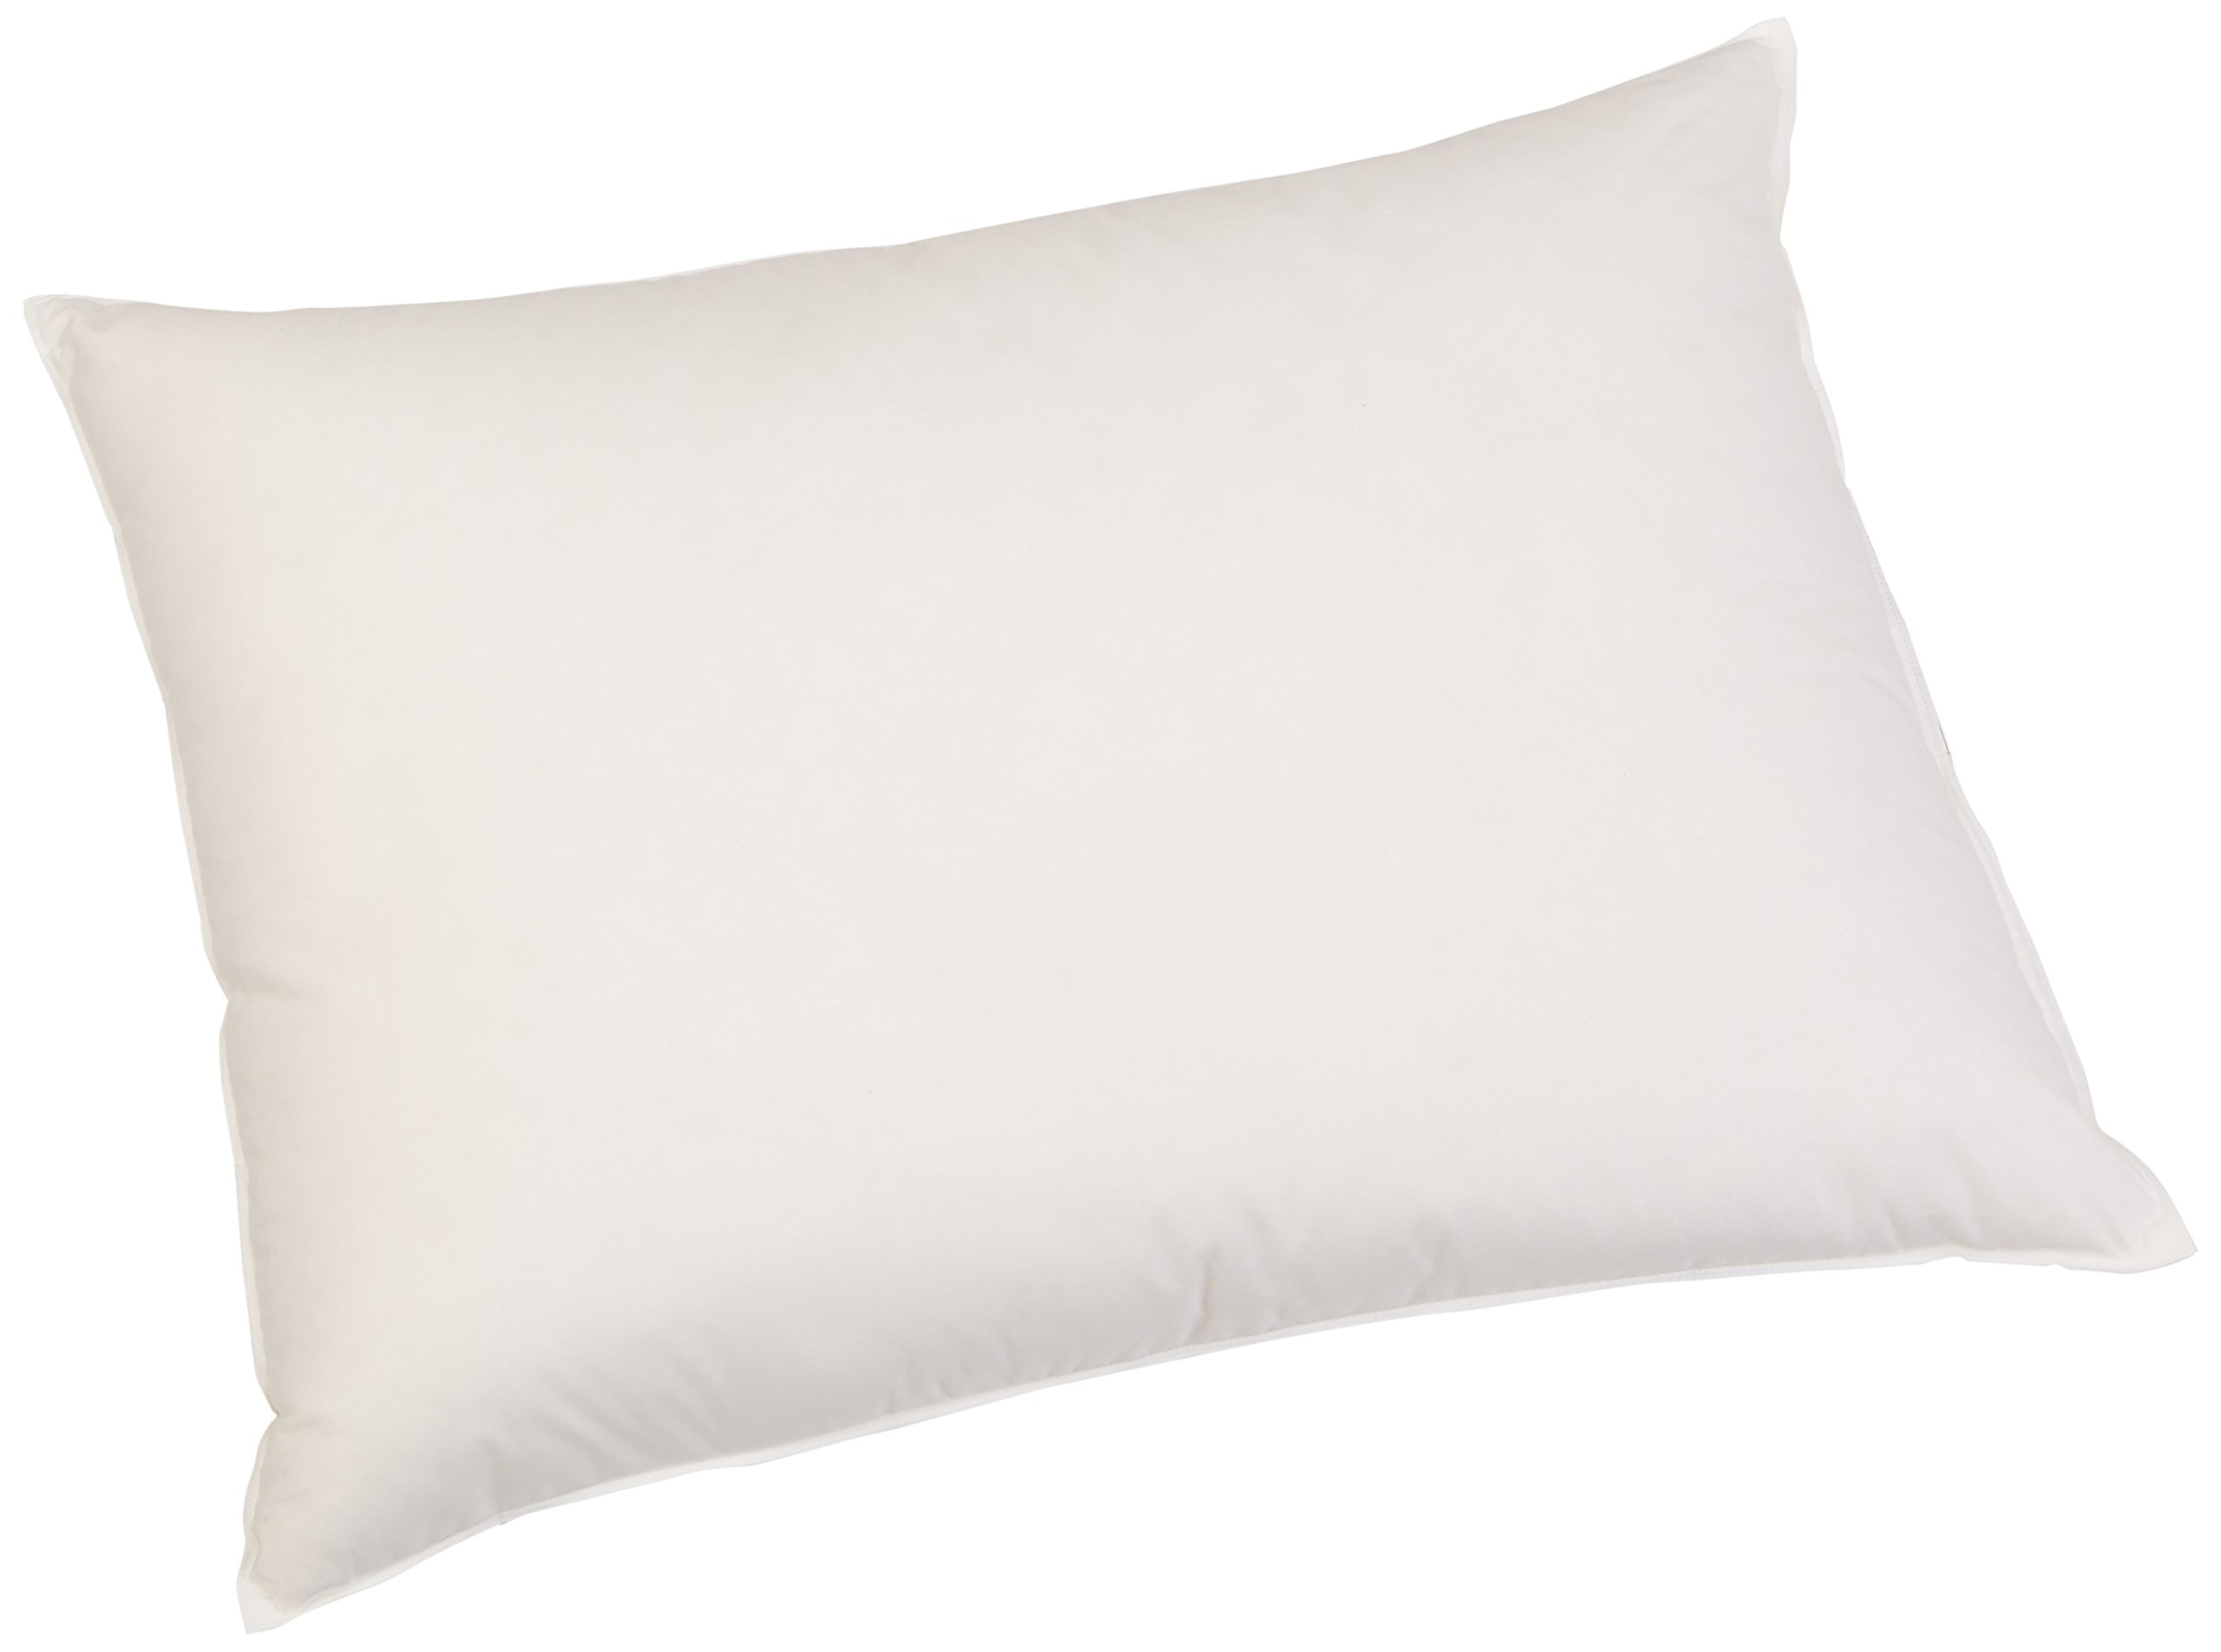 Coyuchi Down Pillow Insert, King, White by Coyuchi